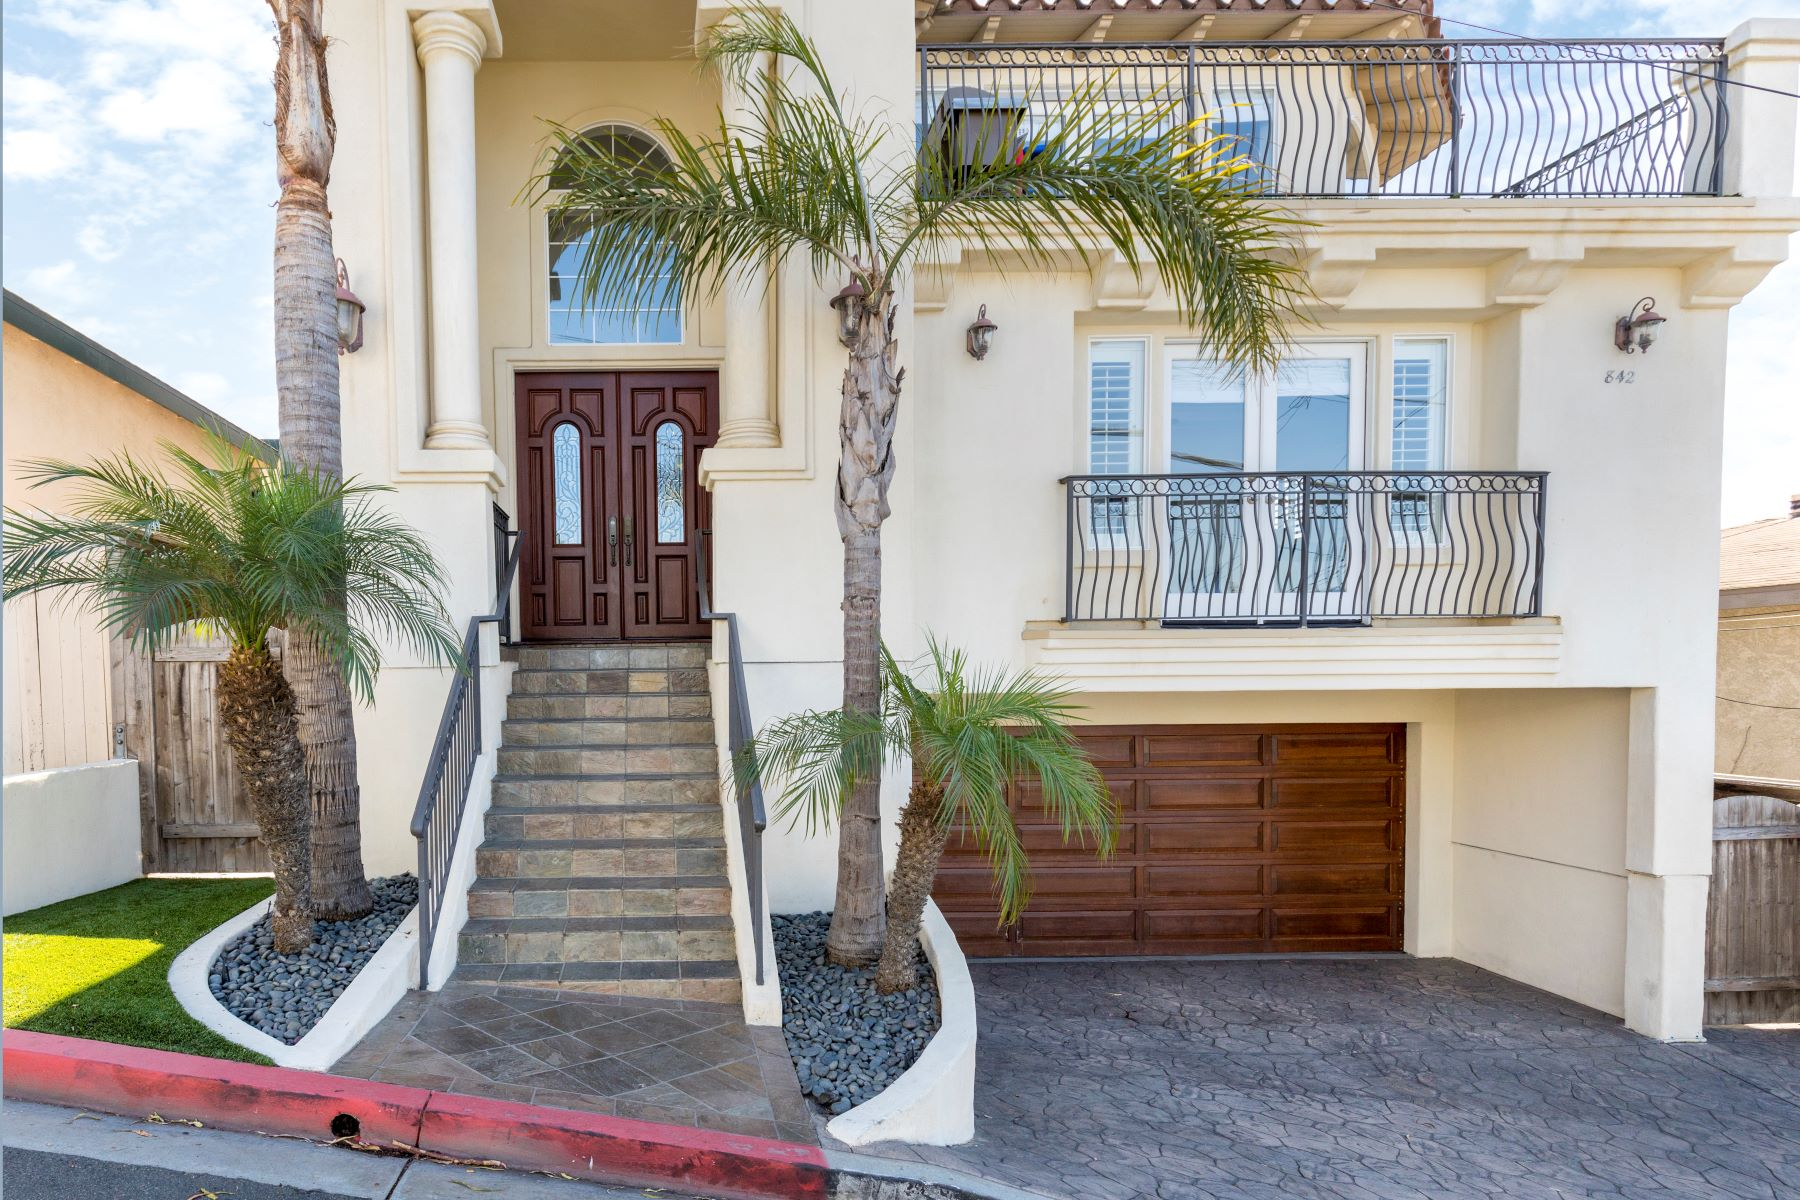 townhouses for Active at 842 8th Street, Hermosa Beach, CA 90254 842 8th Street Hermosa Beach, California 90254 United States